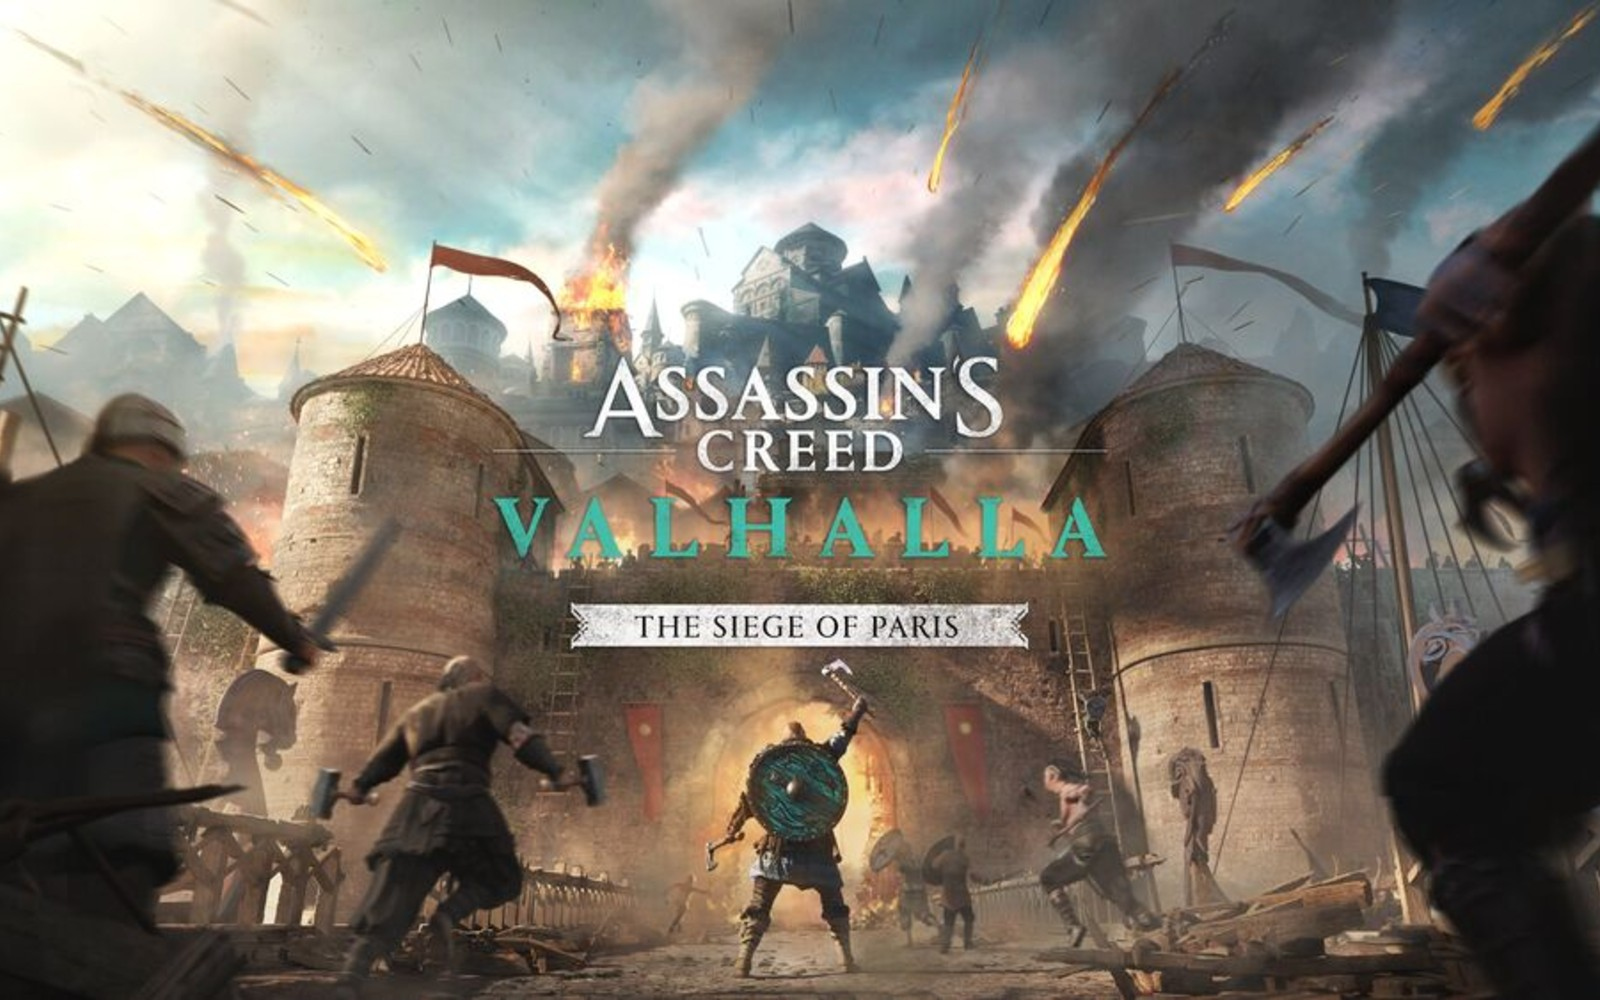 Assassin's Creed Valhalla' DLC will let you lay siege to Paris this summer  | Engadget